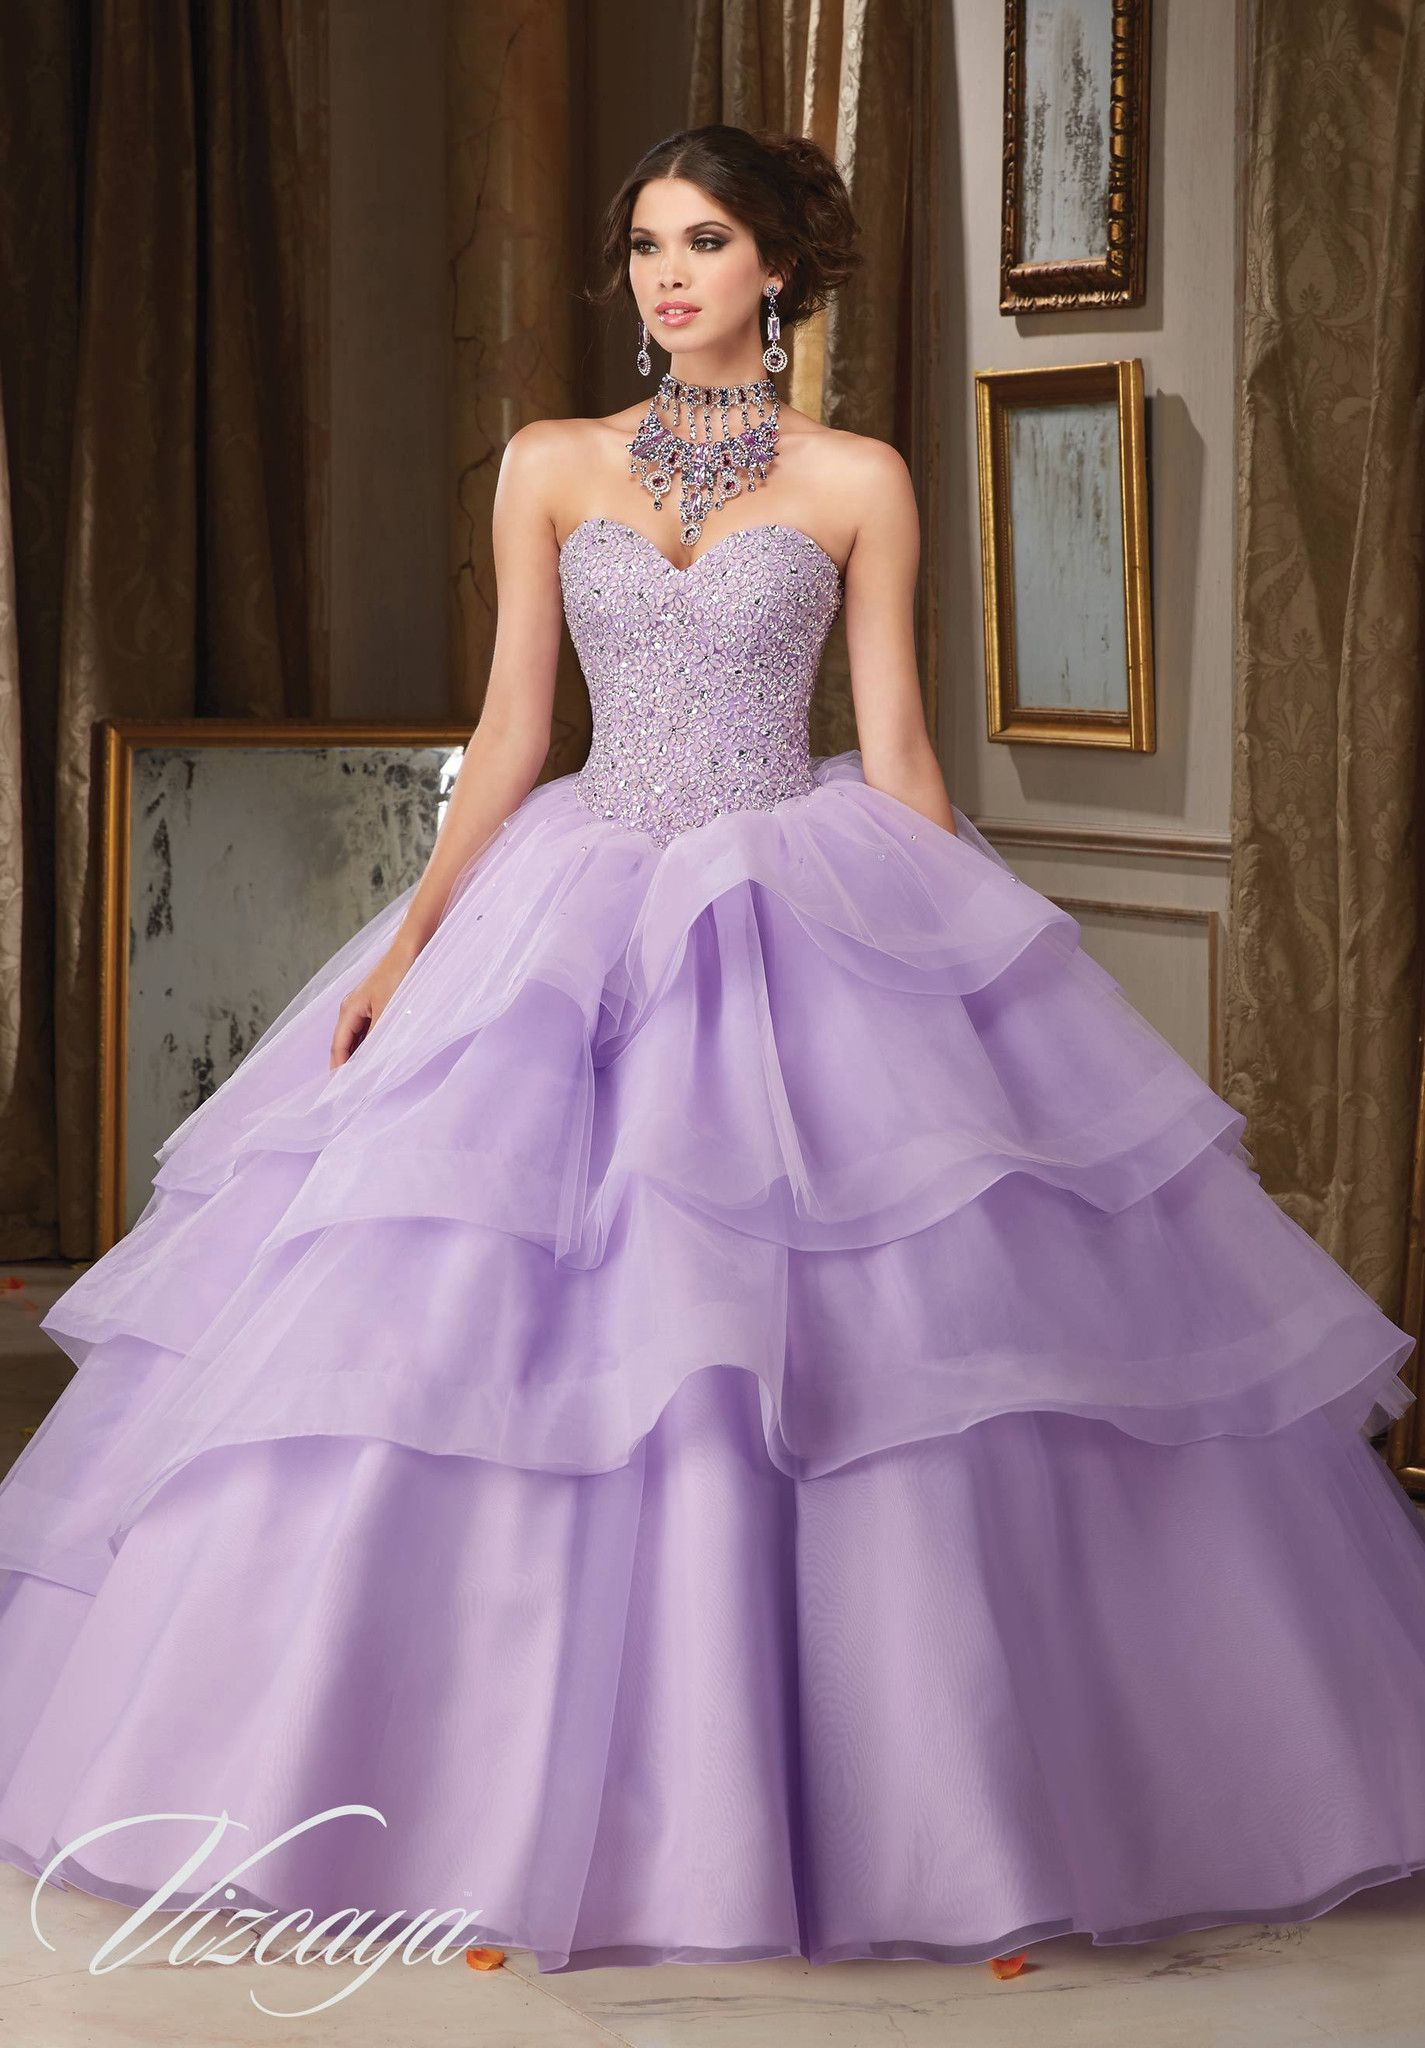 Mori Lee Quinceanera Dress 89111 | Vestiditos, Vestidos de fiesta y ...